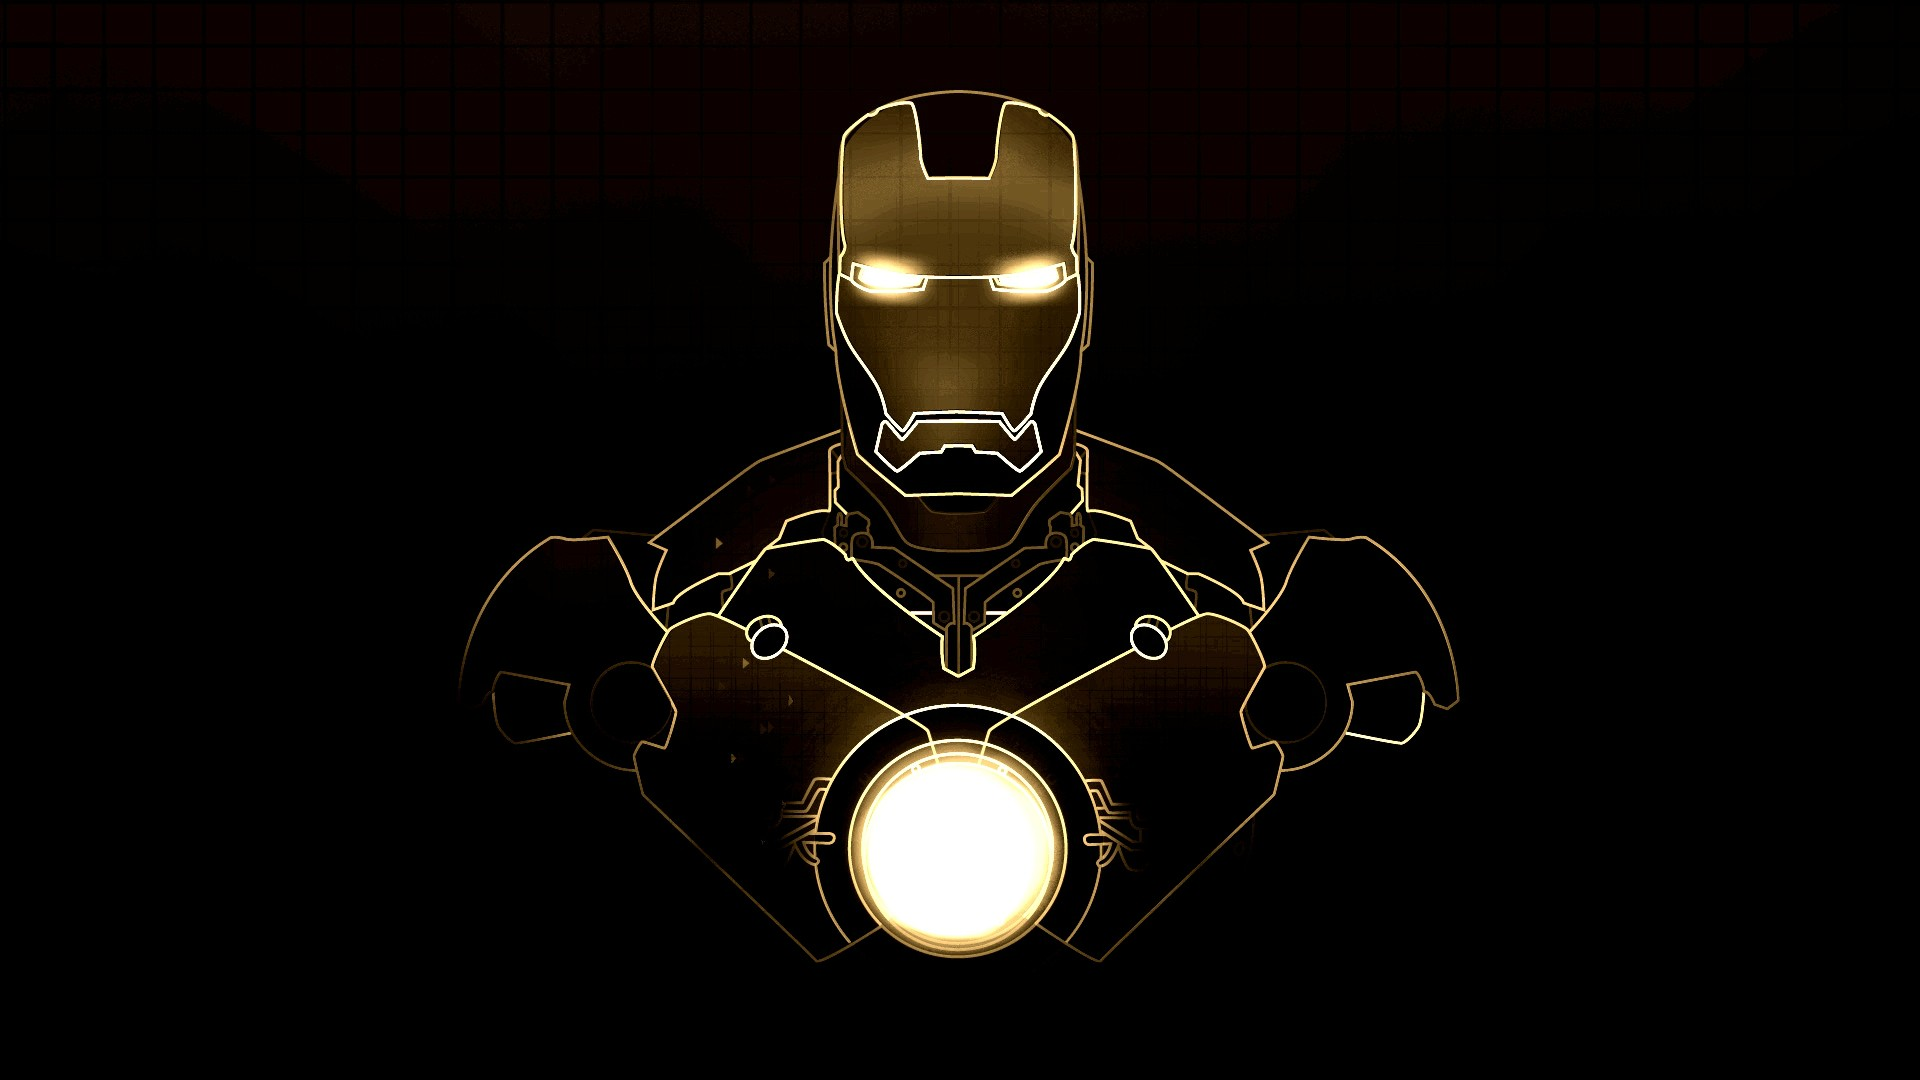 wallpaper abyss explore the collection iron man movie iron man